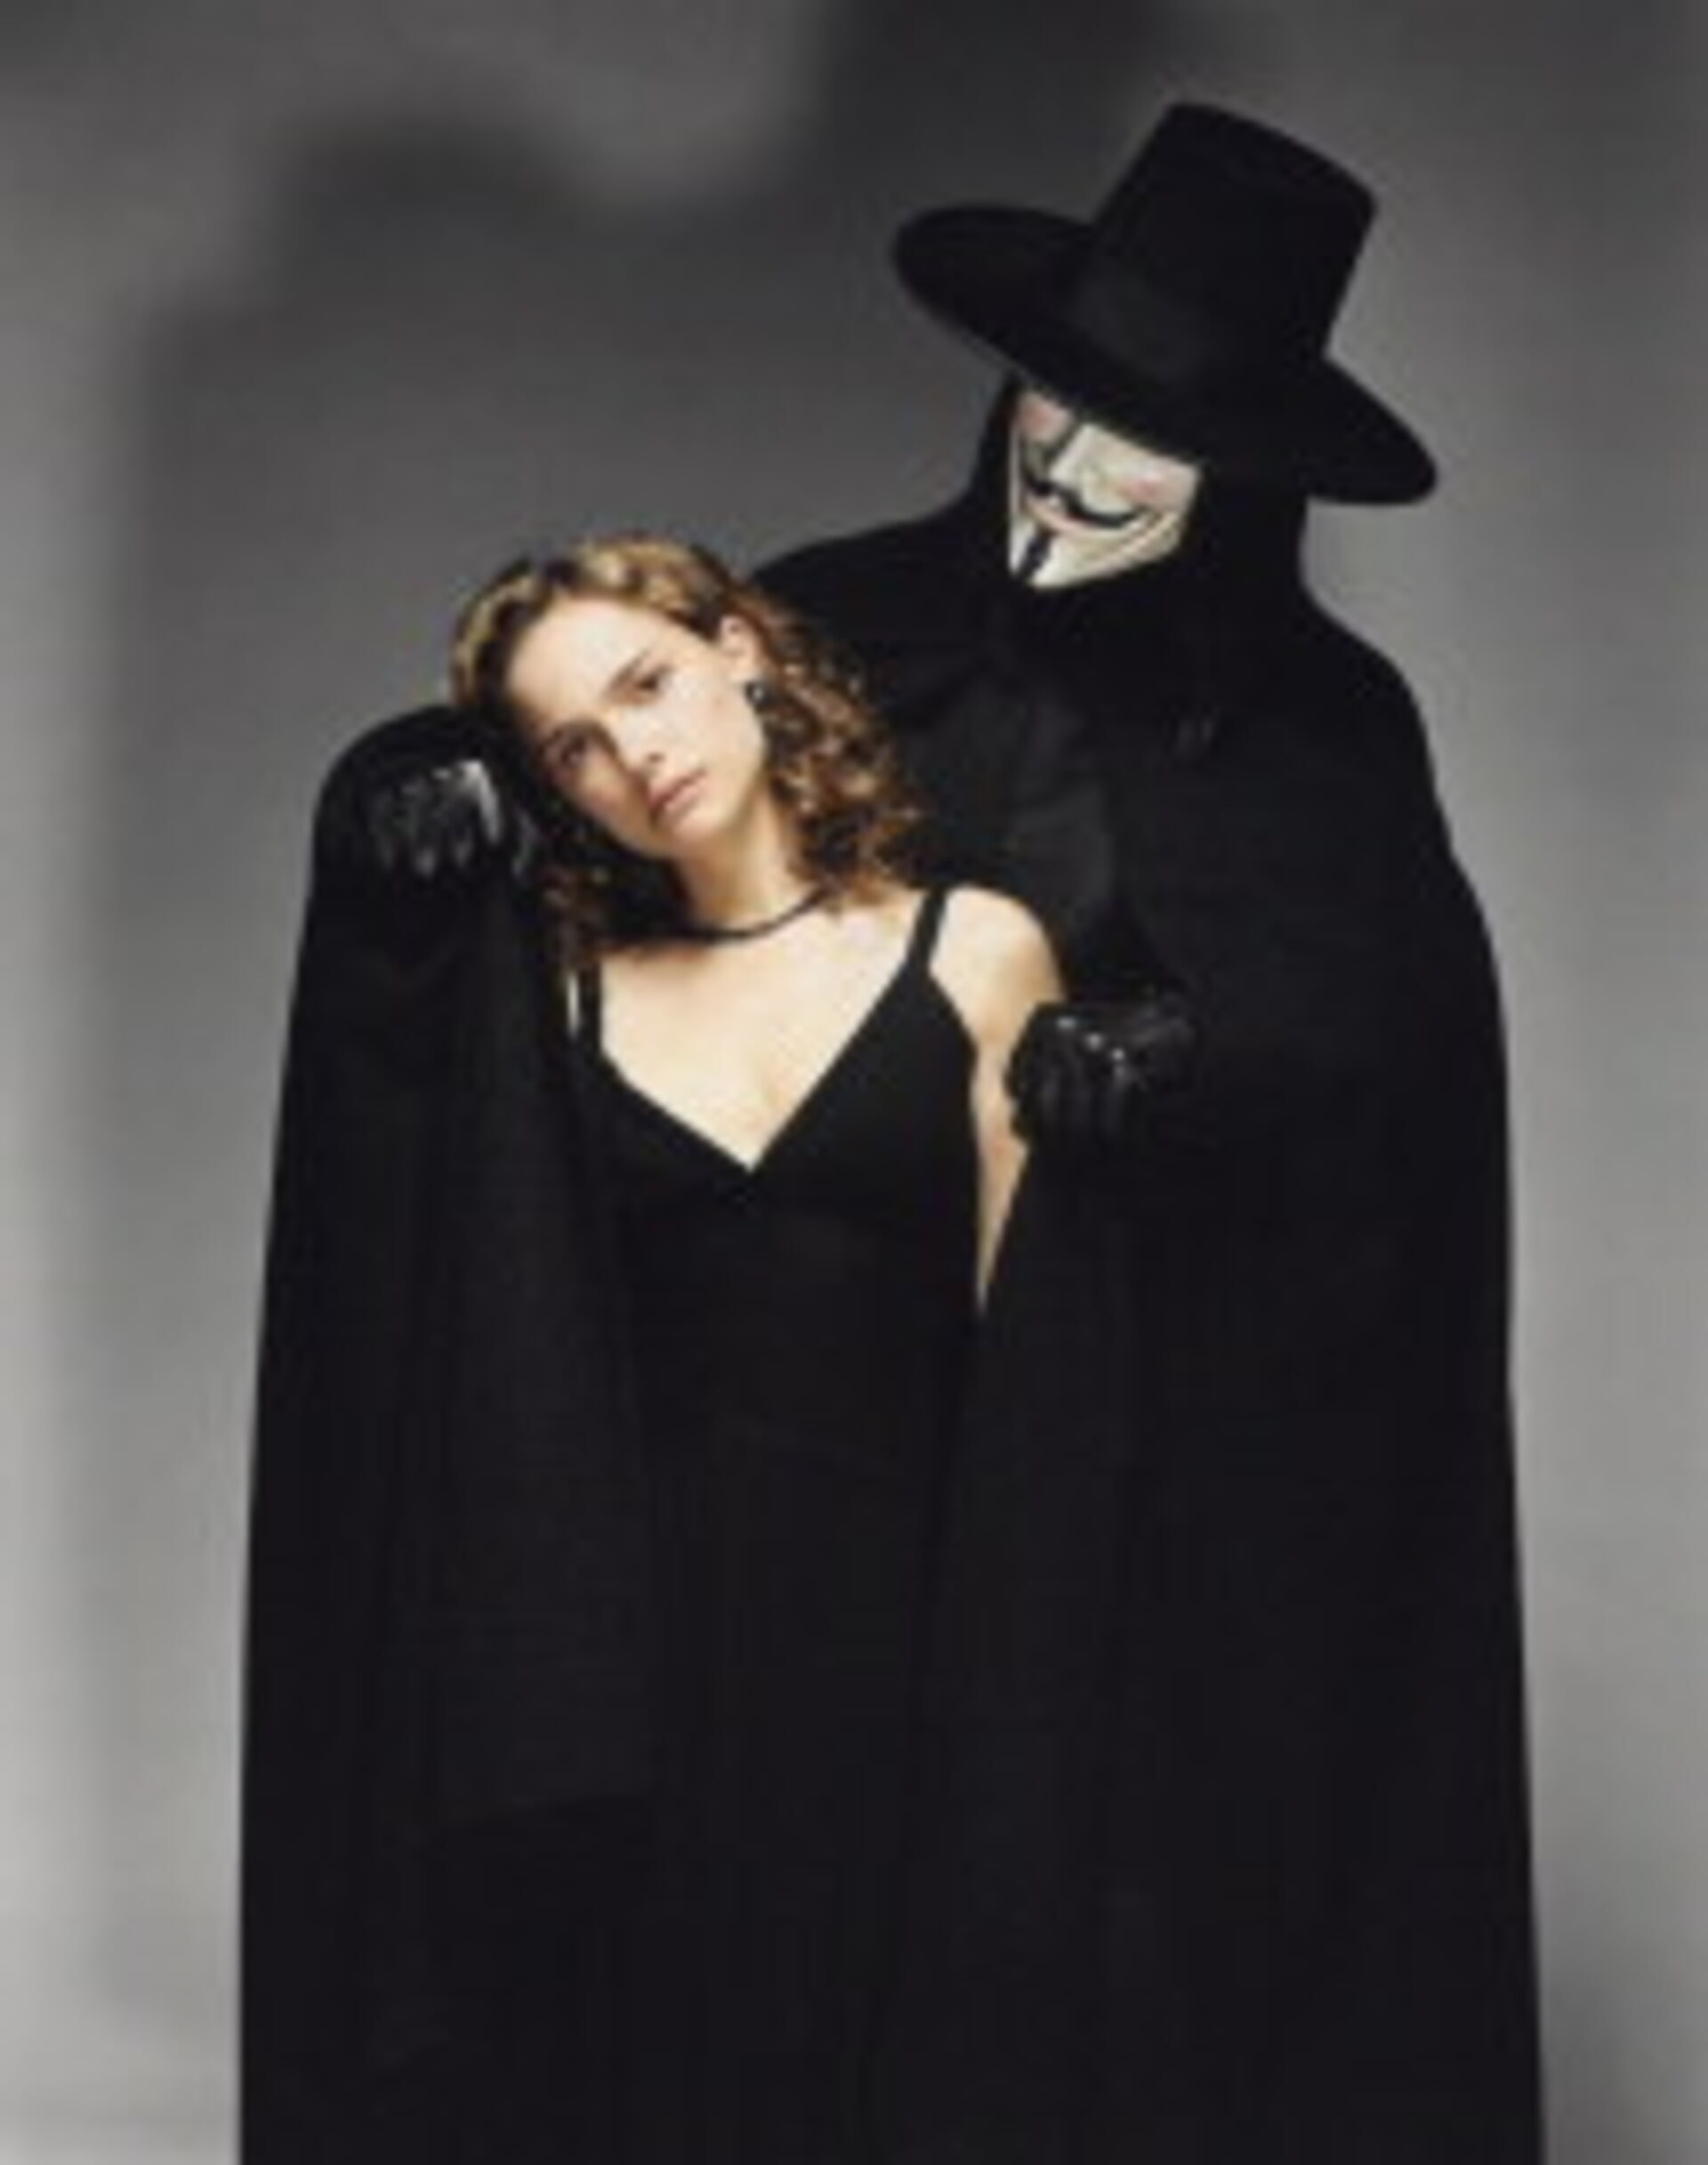 V for Vendetta - Image 35